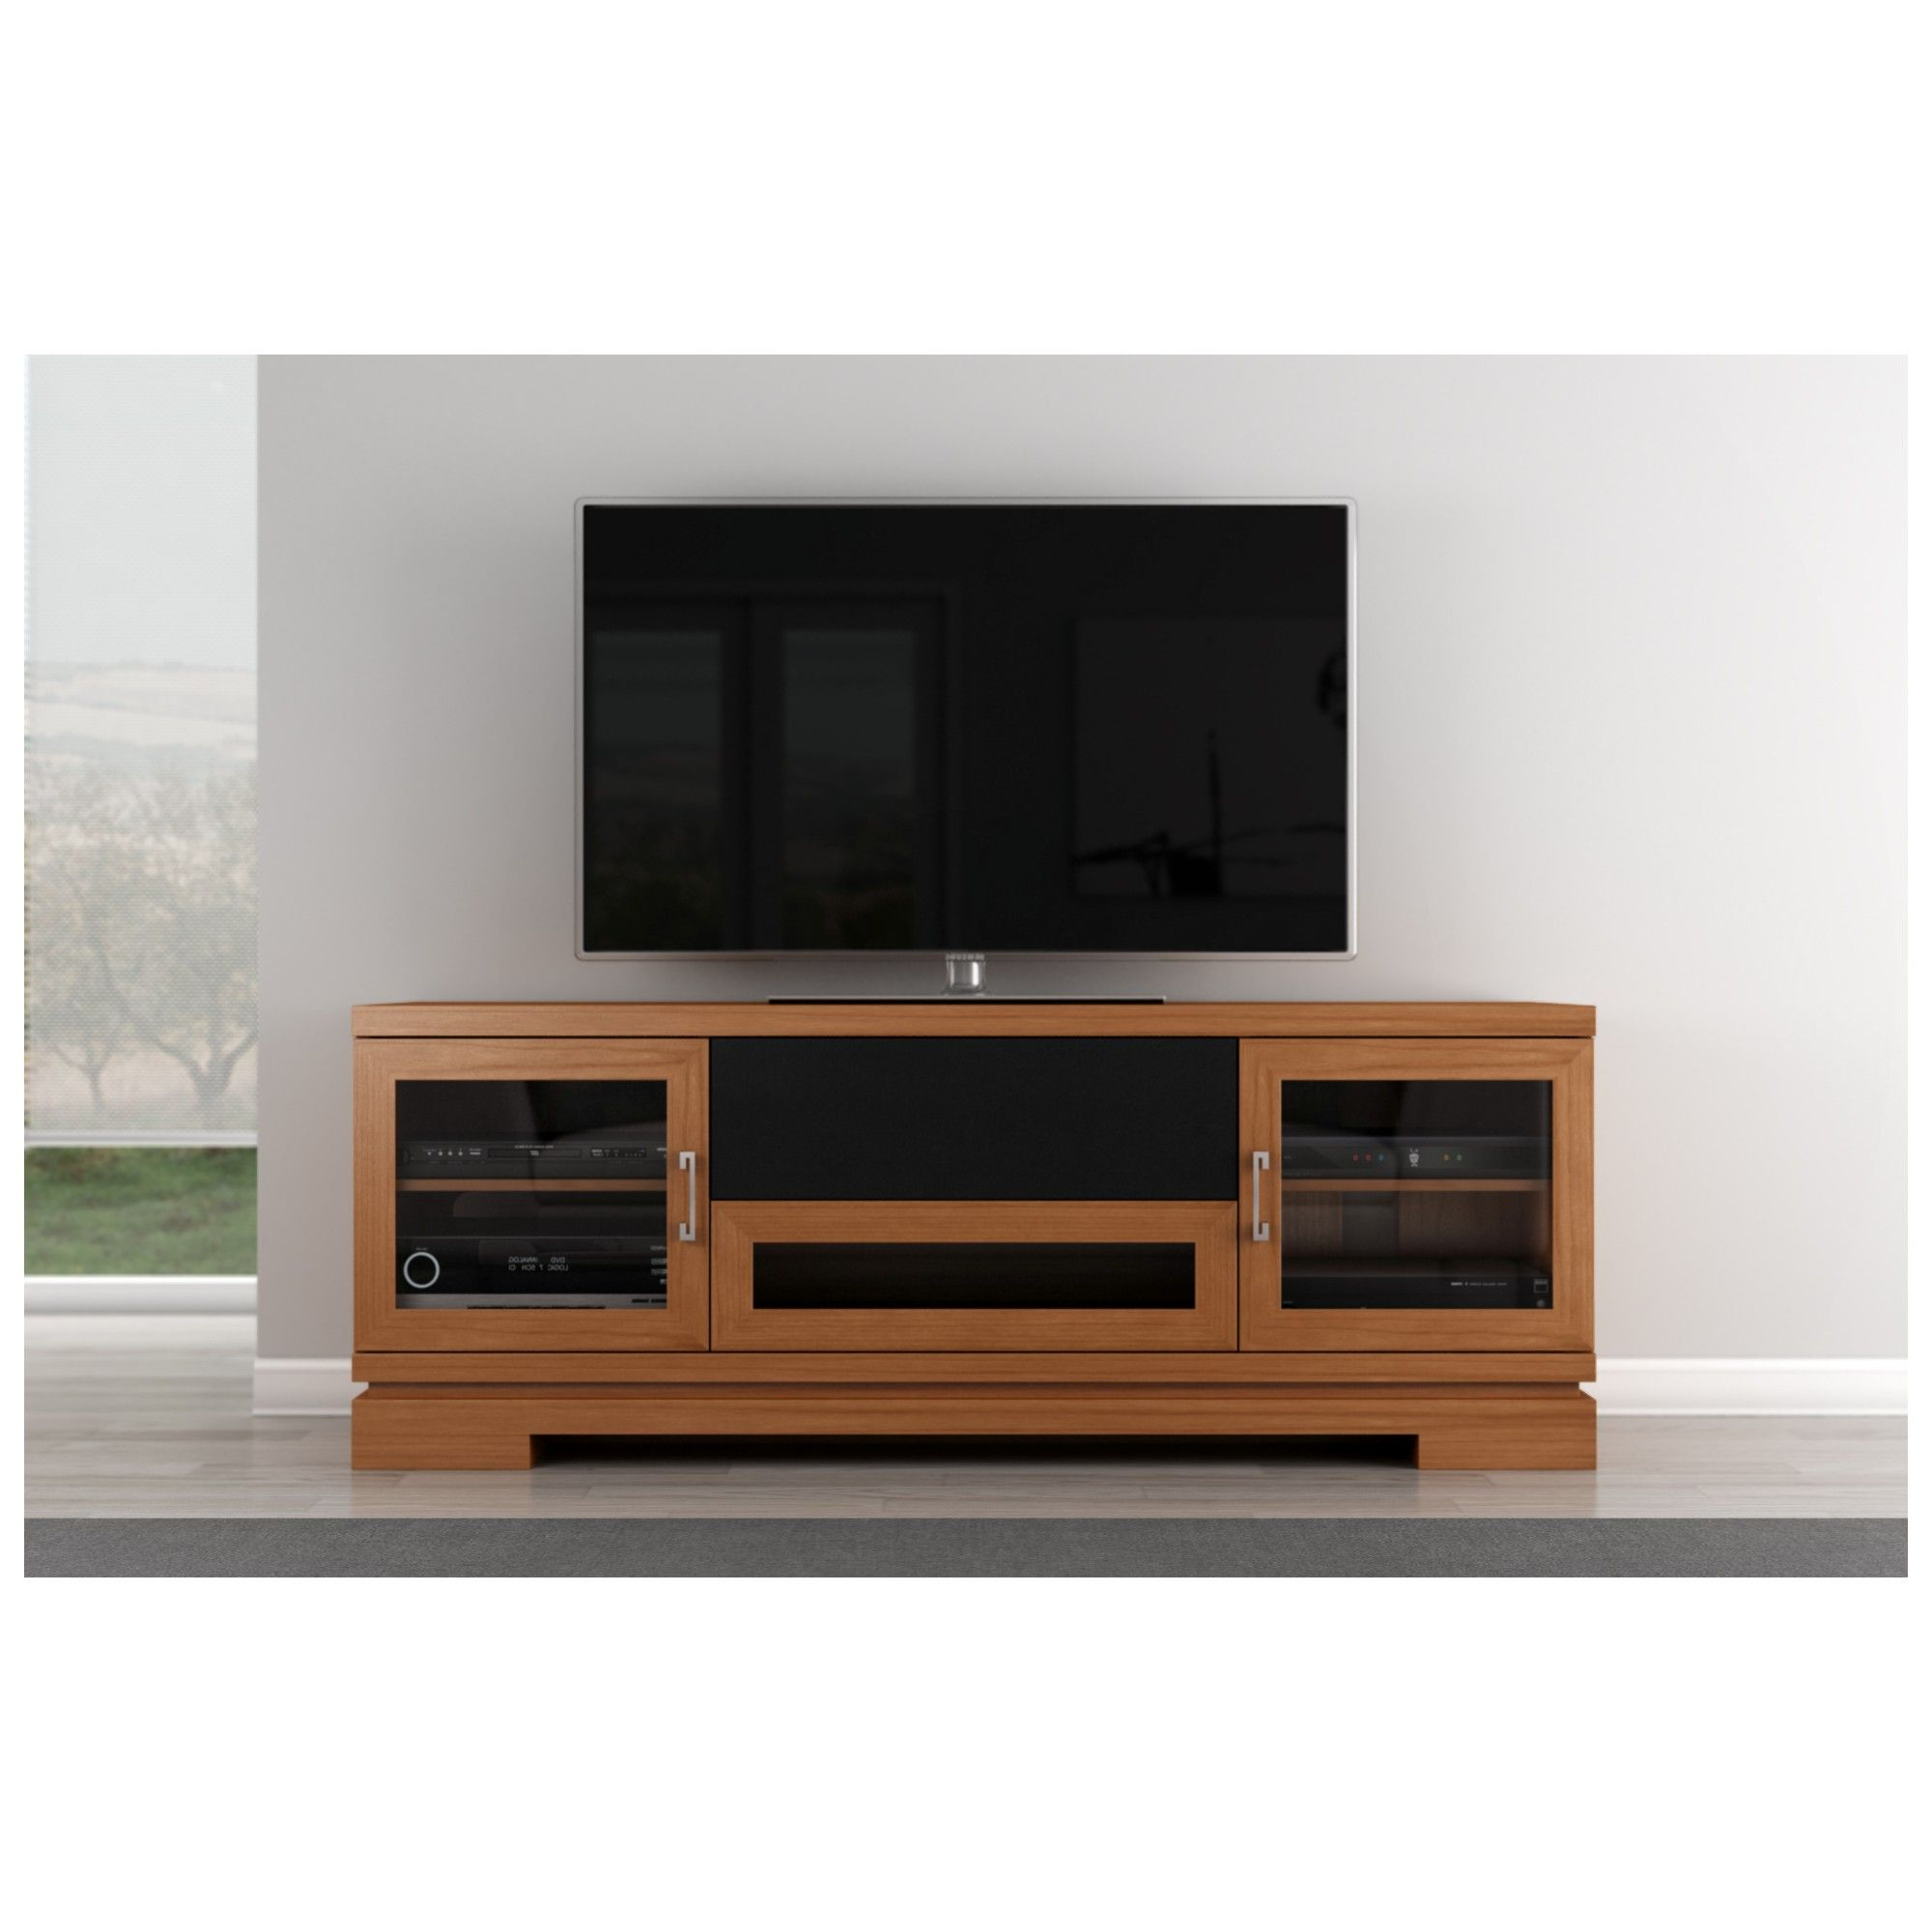 "2017 Tv Stands For 70 Flat Screen Throughout 70"" Tv Stand Contemporary Media Cabinet W/ Center Speaker Opening In (Gallery 7 of 20)"